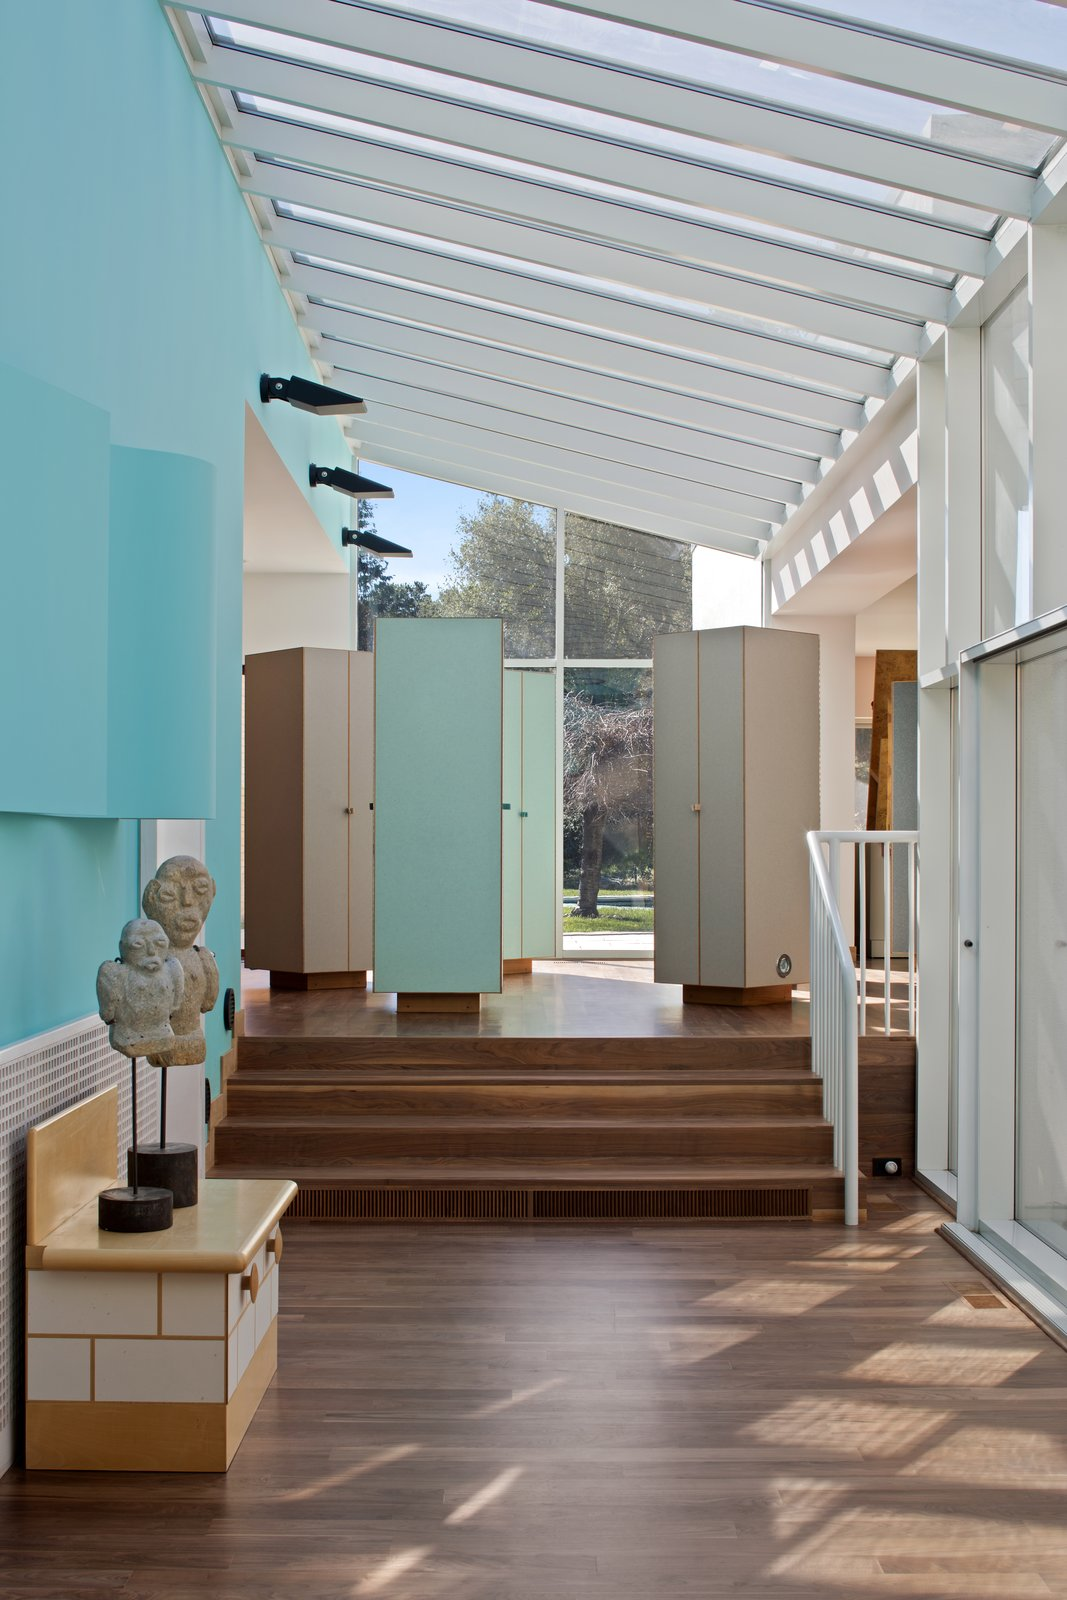 A glass atrium holds together four of the six pavilions that make up the home. Sottsass considered hallways to be unimaginative, preferring to create a flexible village of connected spaces.  Photo 2 of 12 in IDEO Founder David Kelley Asks $15M For His Ettore Sottsass-Designed Masterpiece